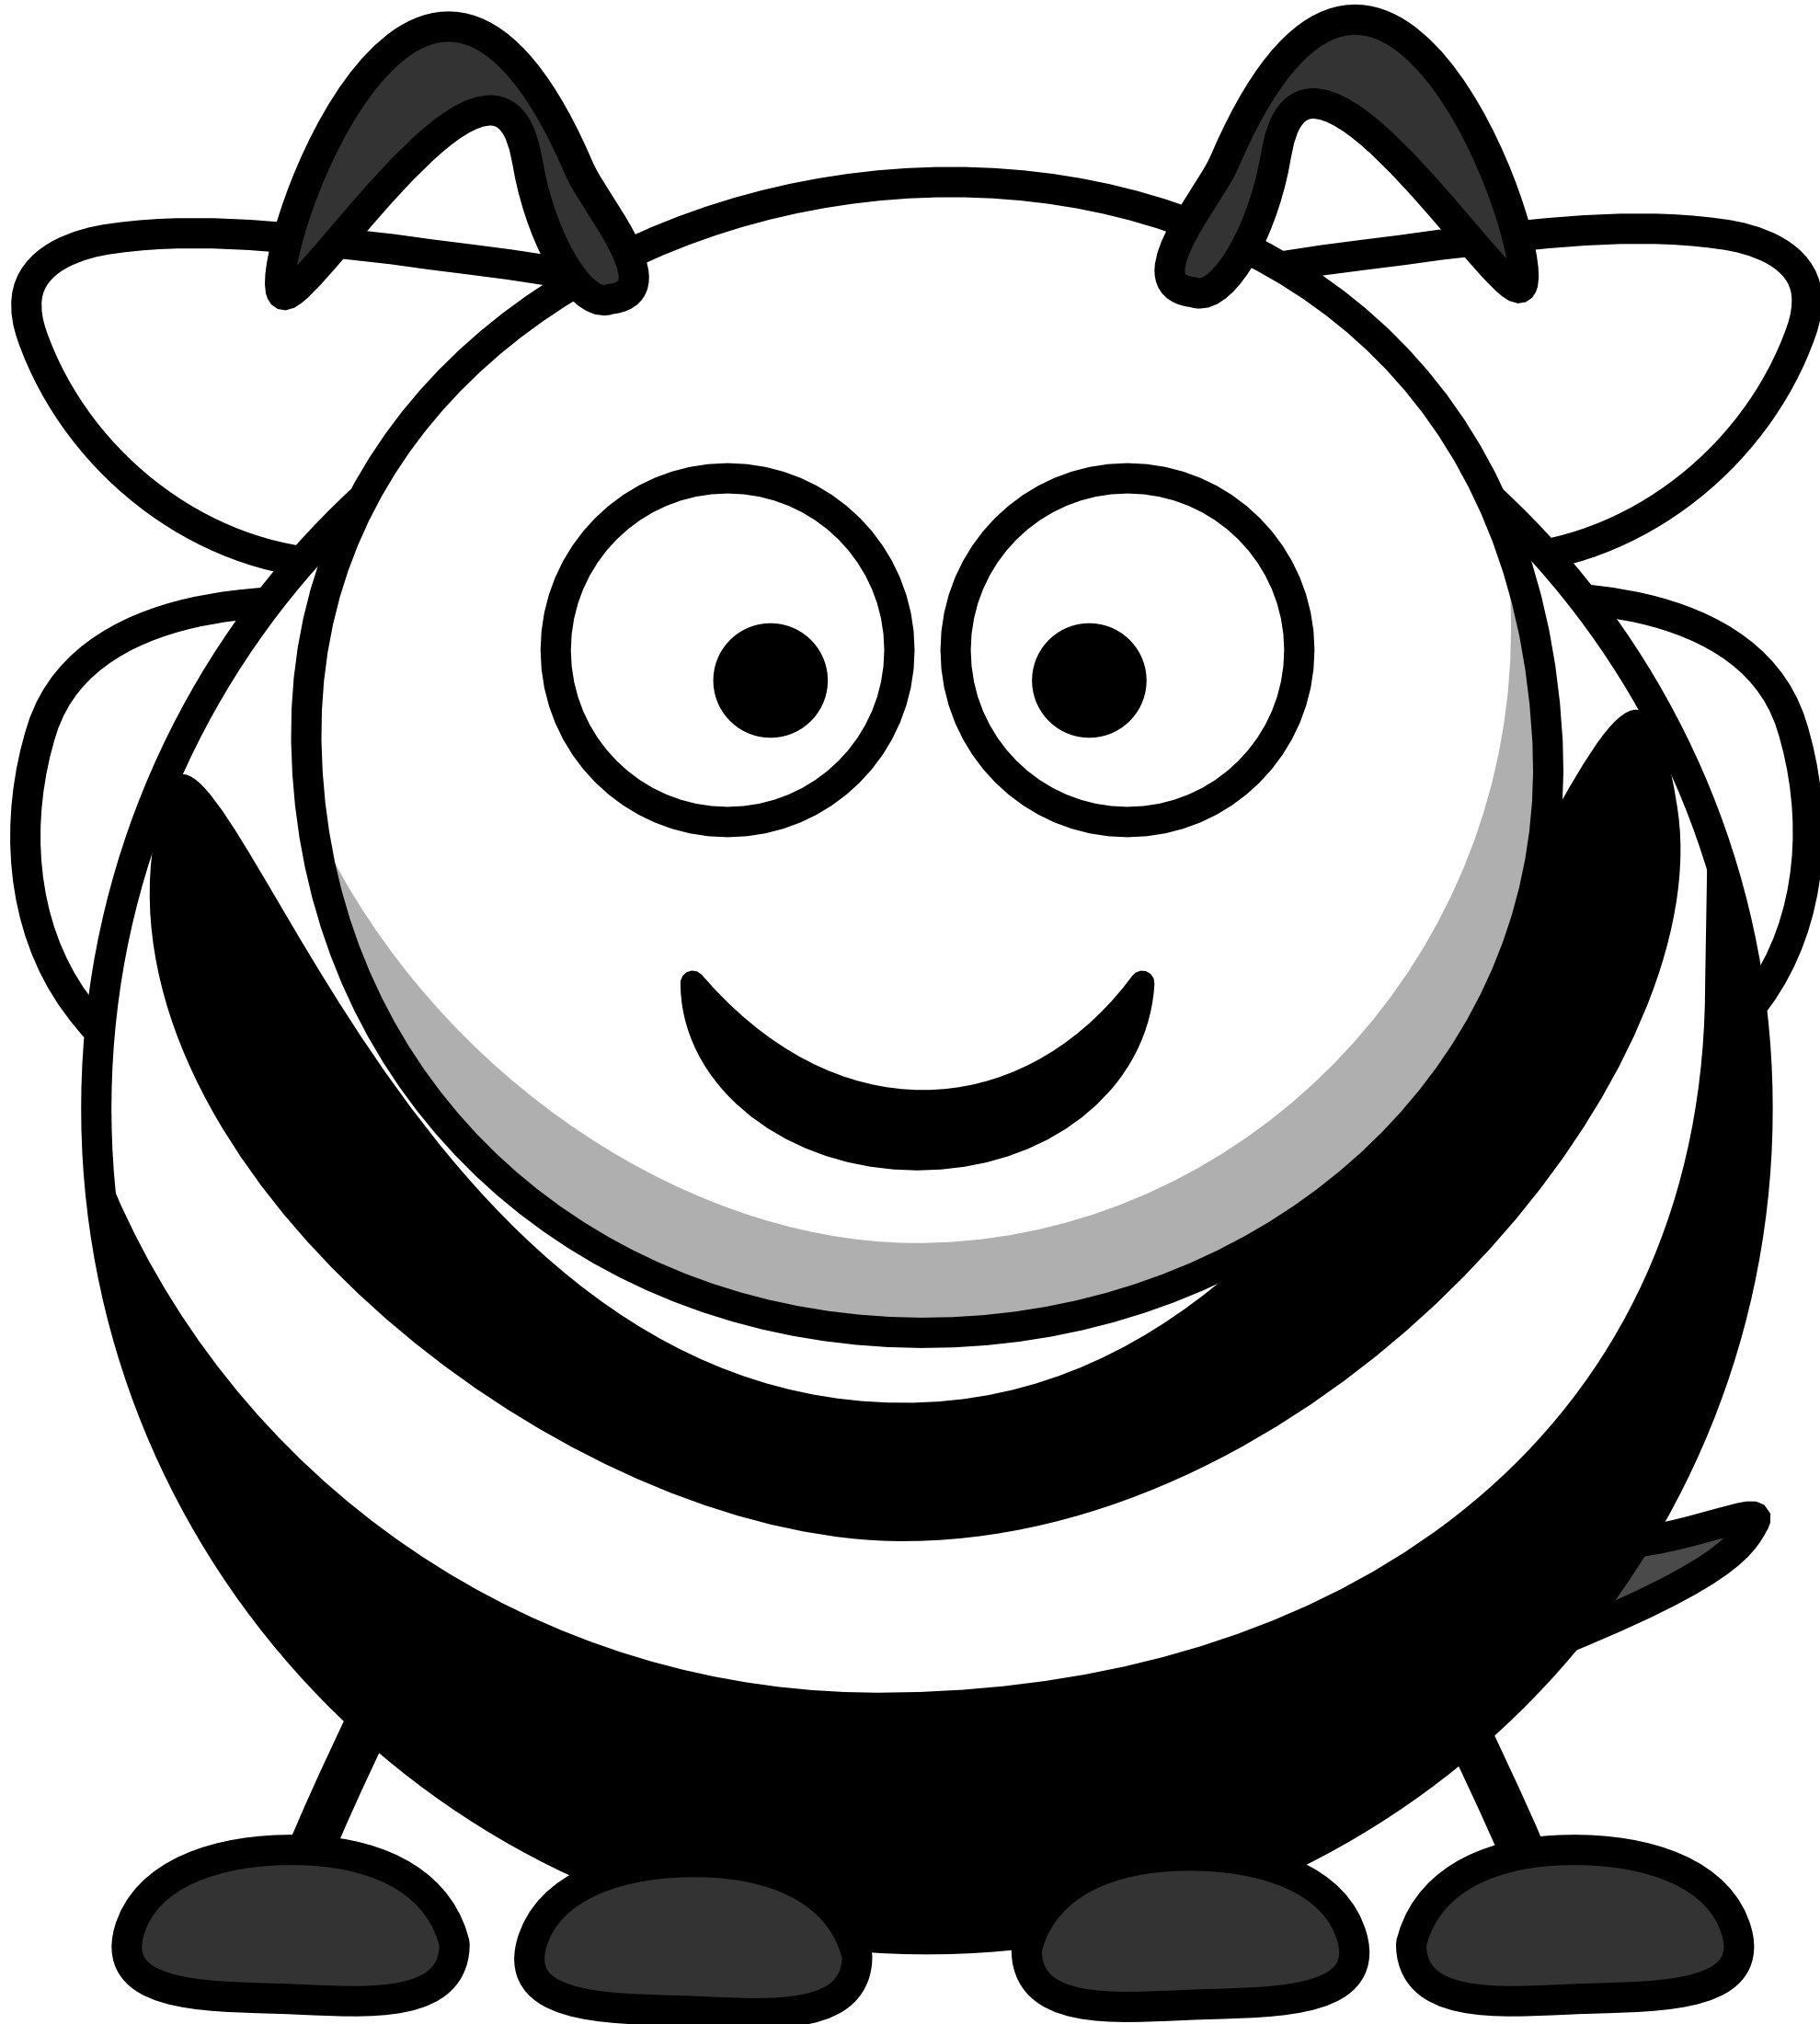 Superman bee clipart clip art black and white library Superman bee clipart - ClipartFest clip art black and white library